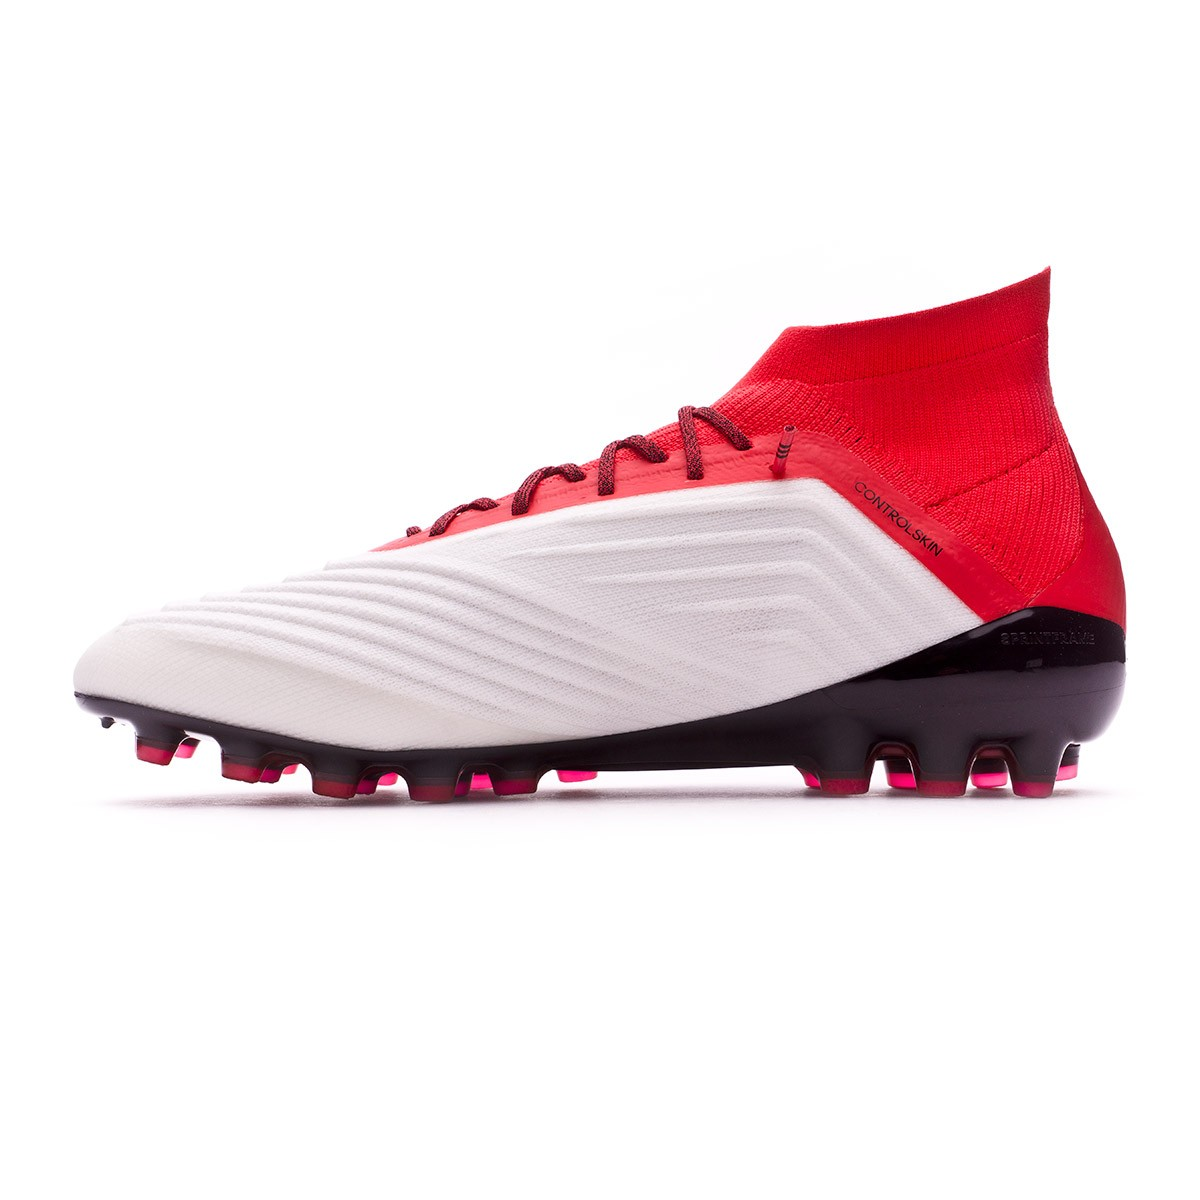 5c858eef297b Football Boots adidas Predator 18.1 AG White-Core black-Real coral -  Football store Fútbol Emotion